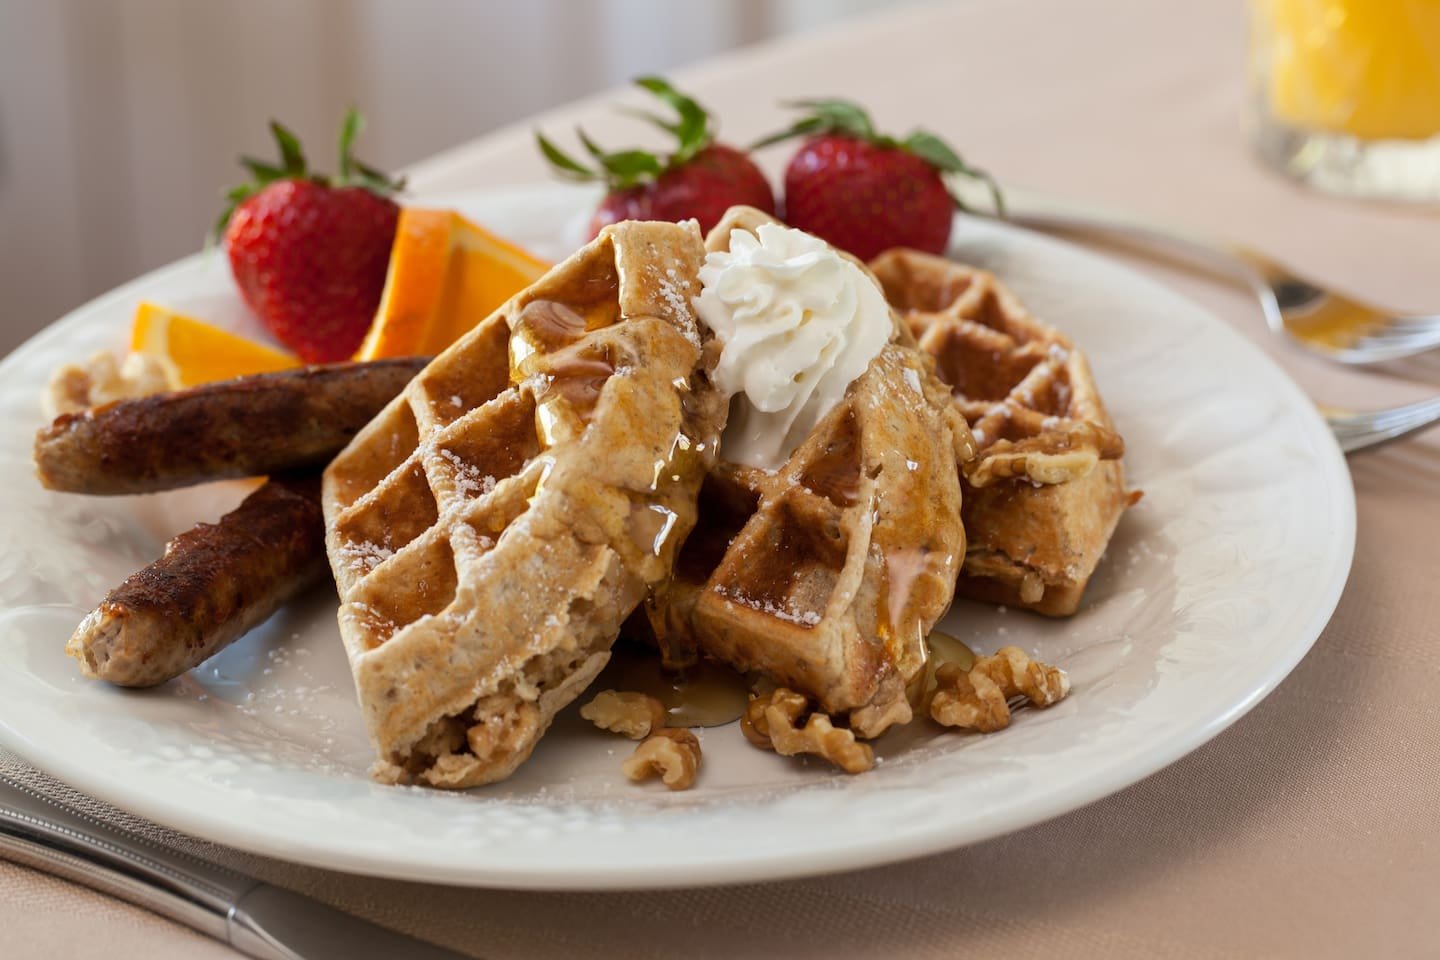 Whole grain cinnamon walnut waffles and local sausage to start your day.